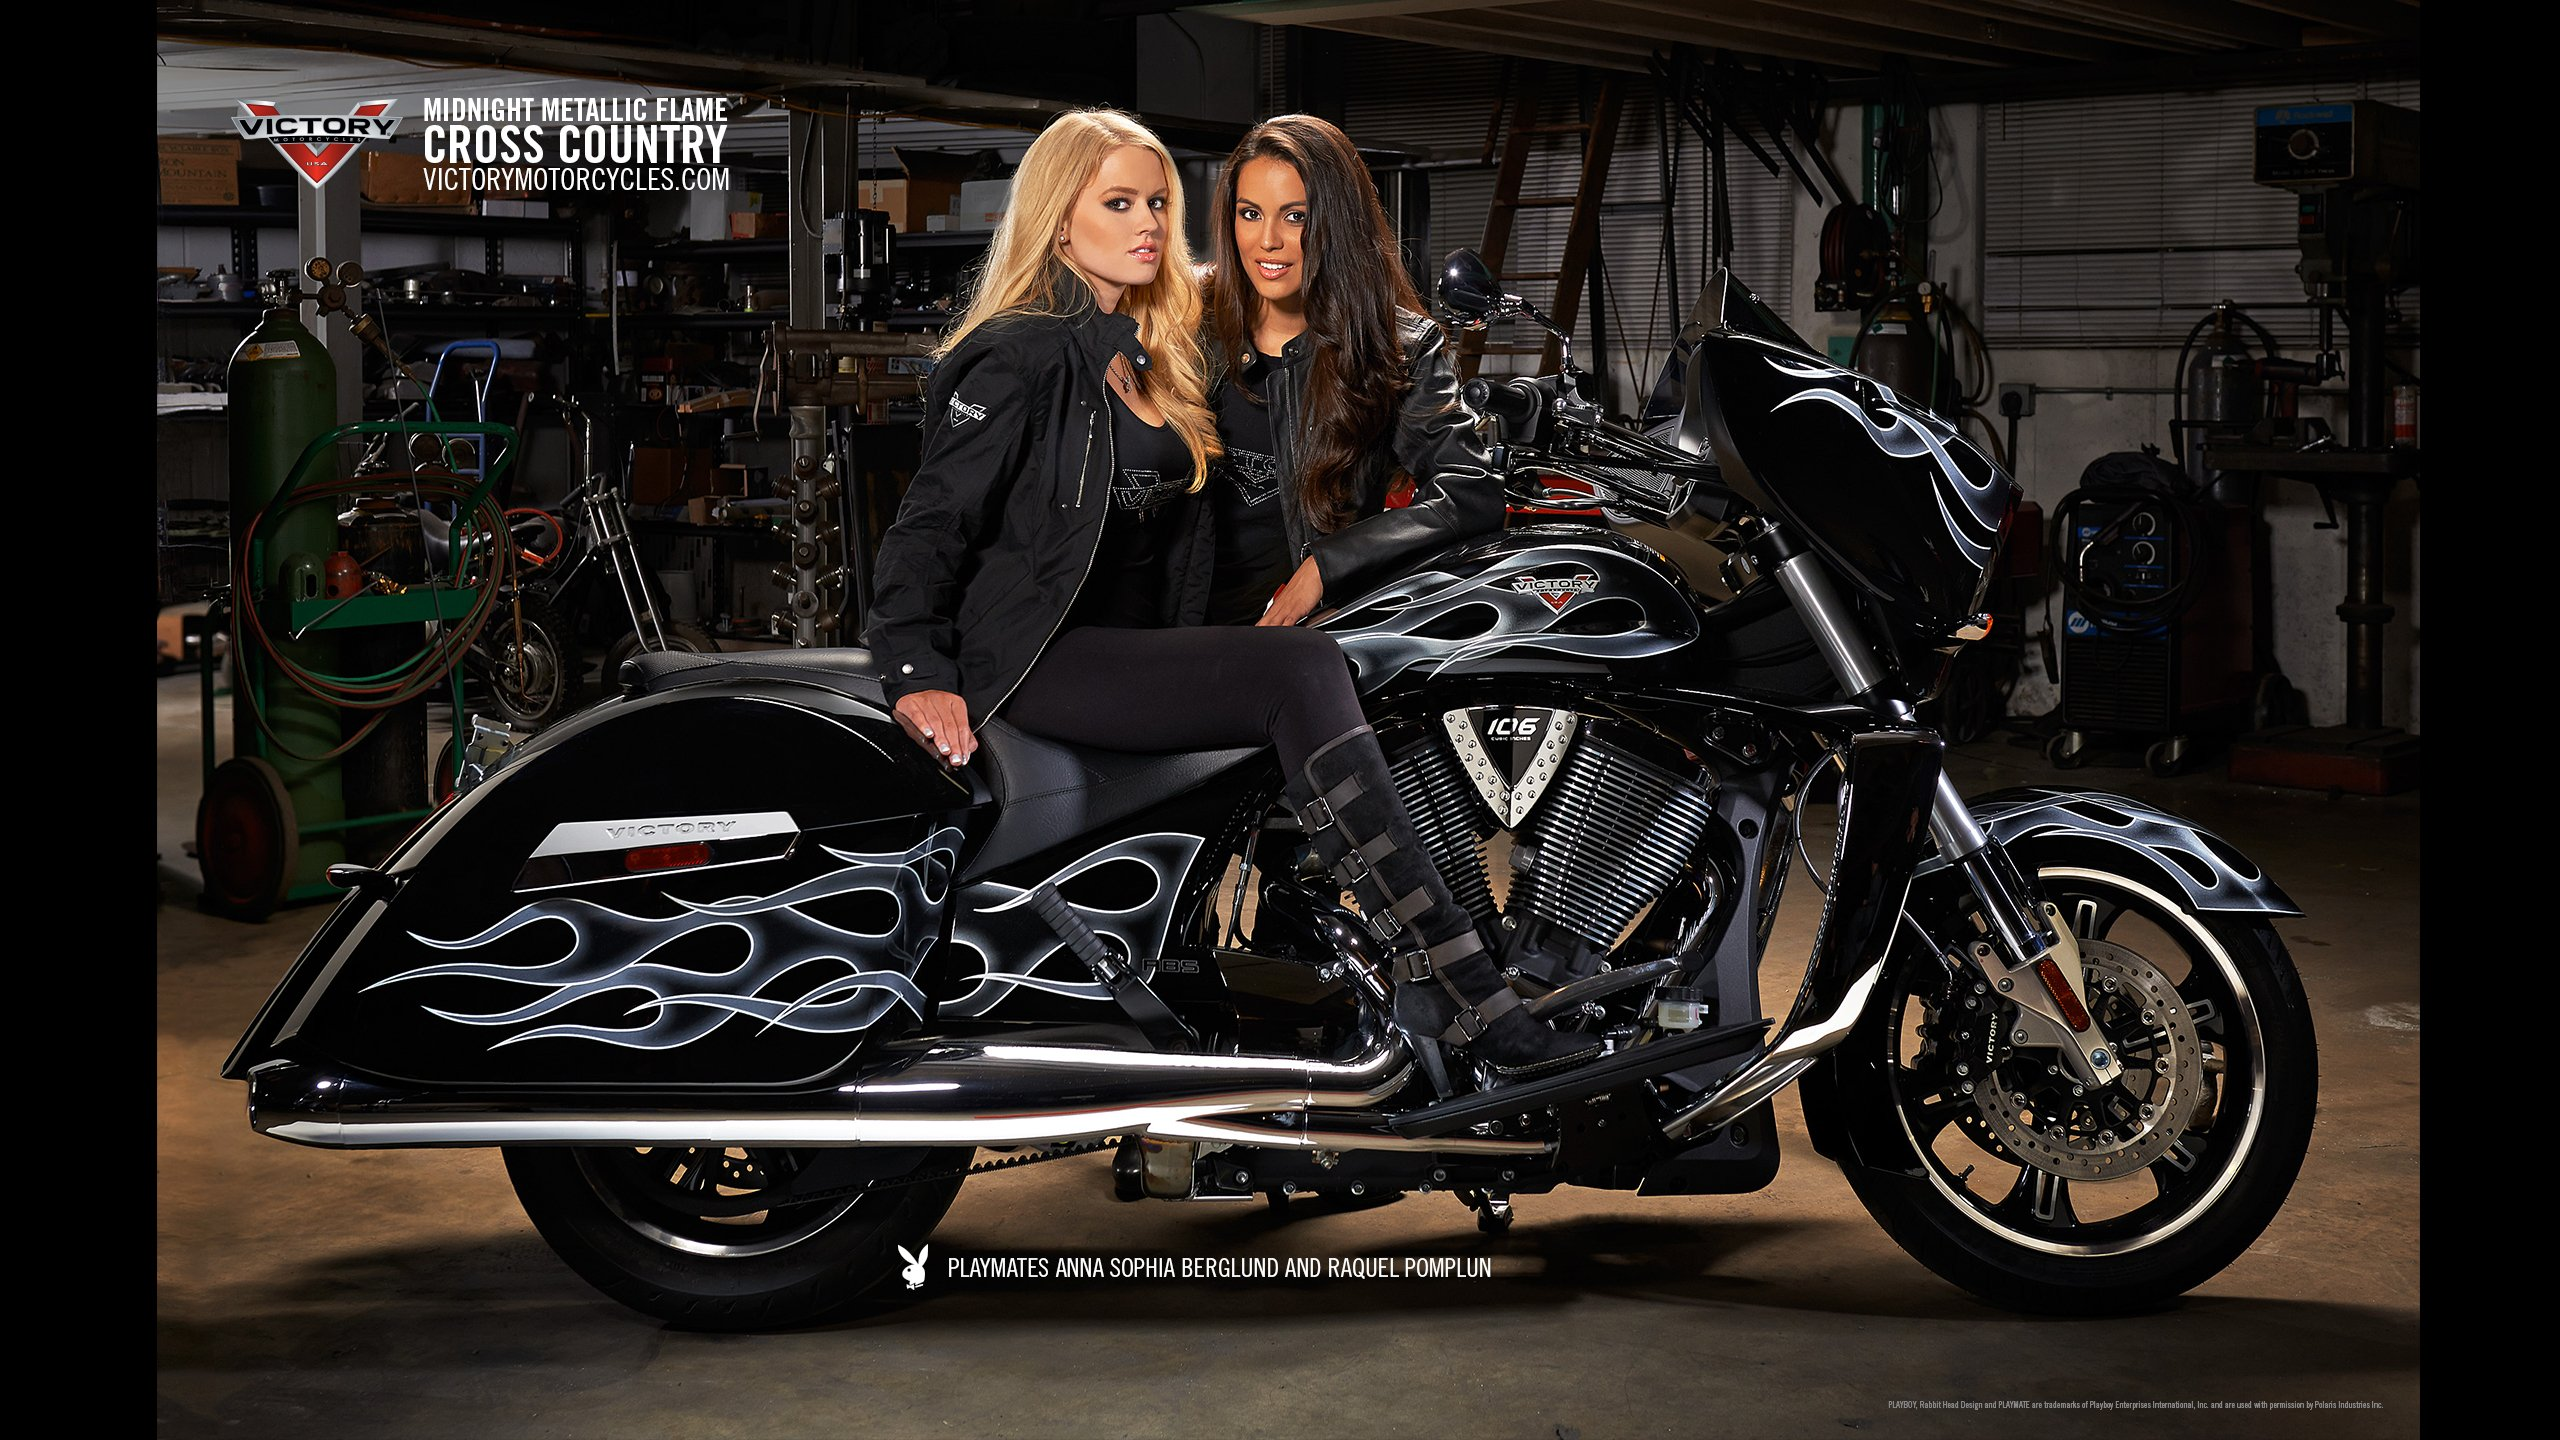 Victory Motorcycles Victory Motorcycles 2560x1440